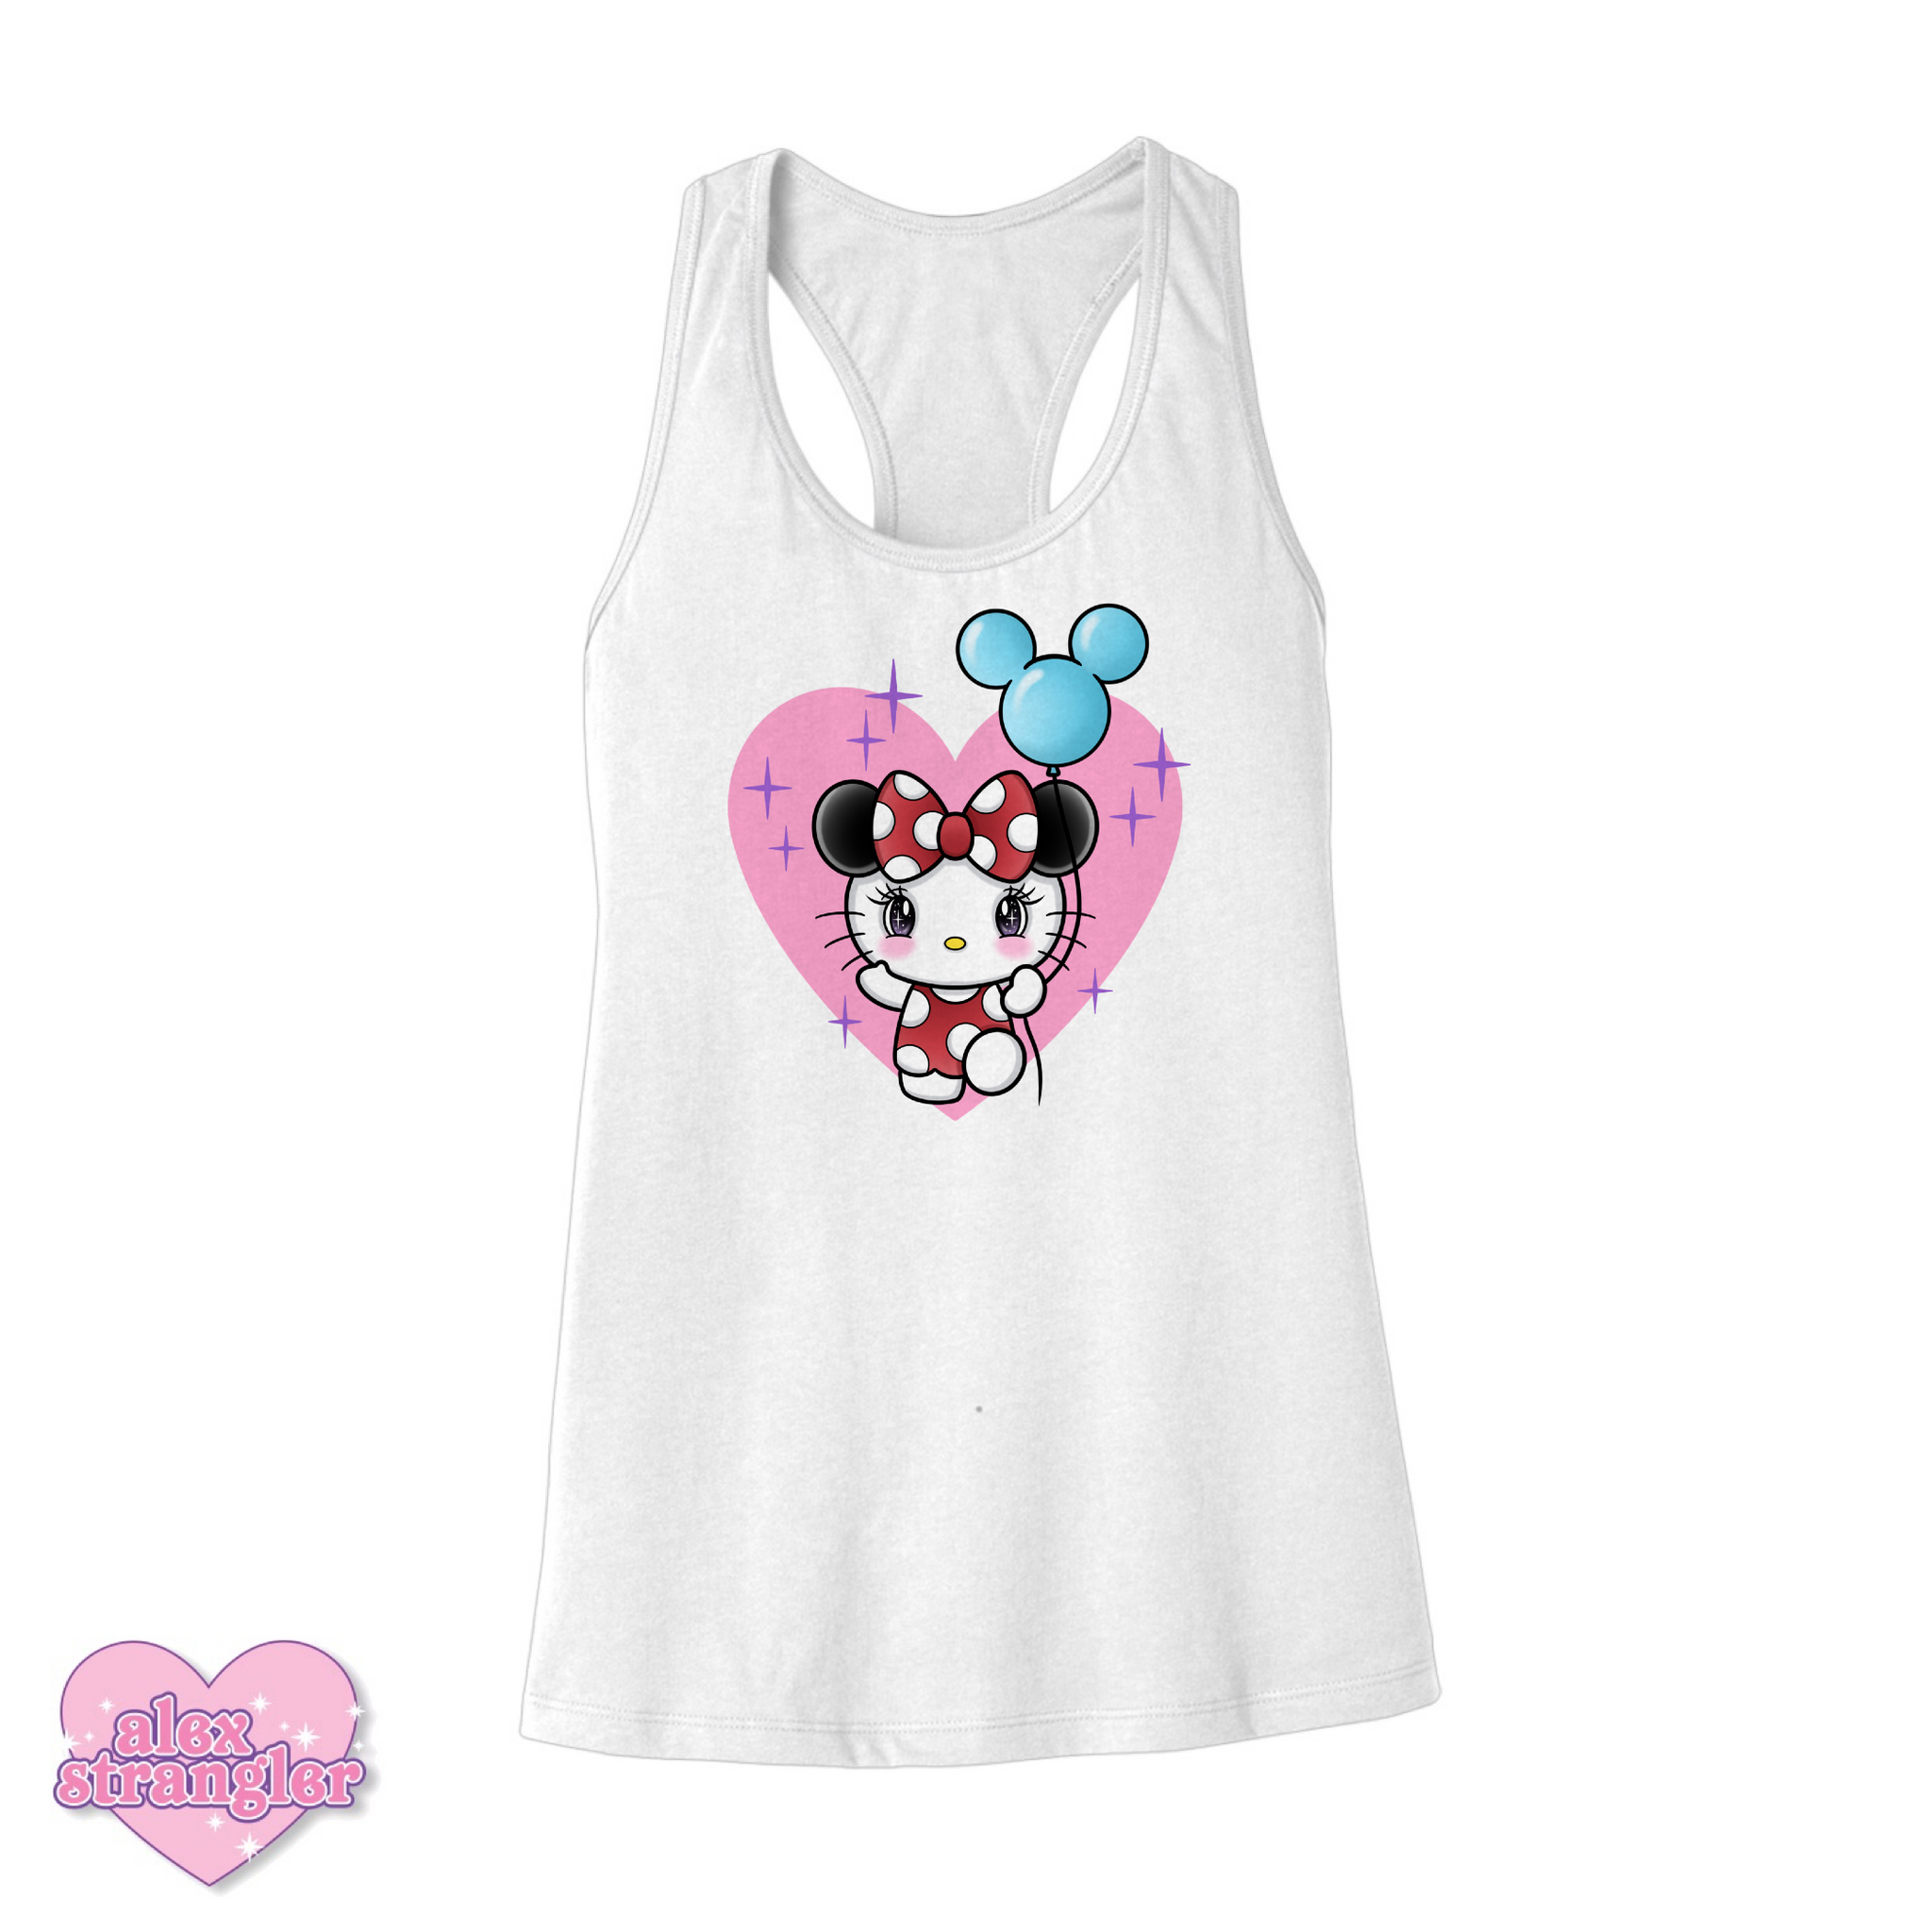 Kitty Goes To The Park - Women's Tank